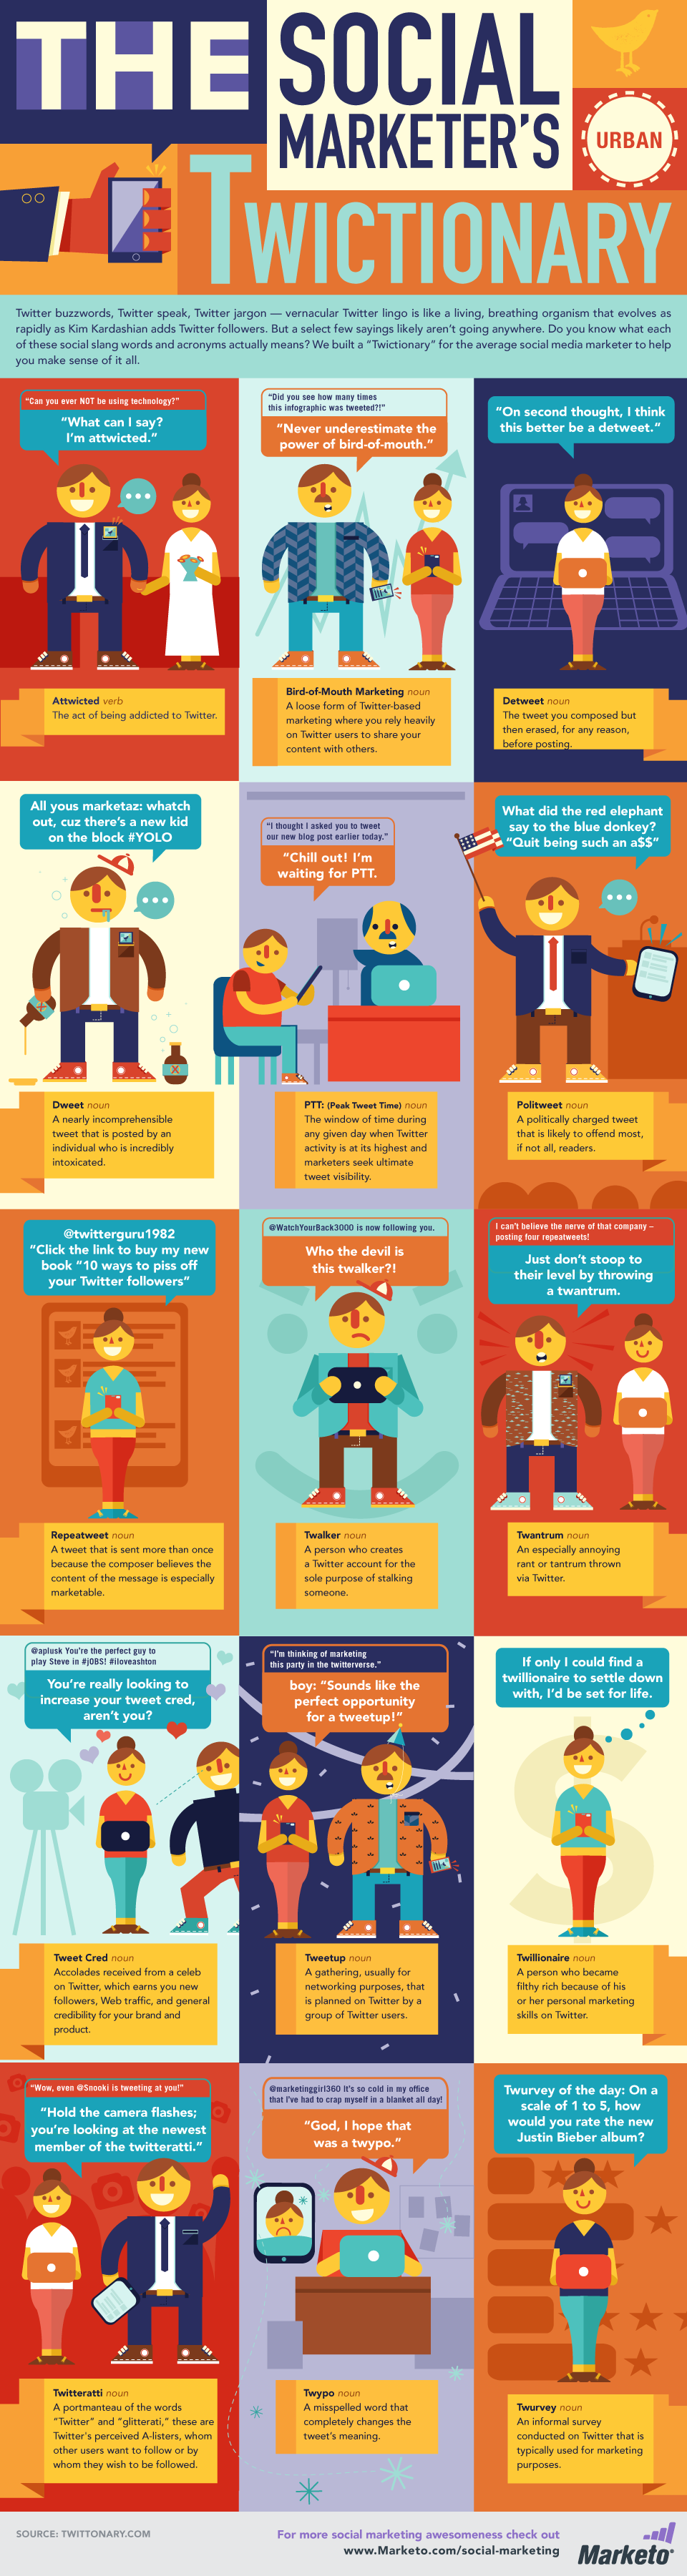 The Social Marketer's Urban Twictionary